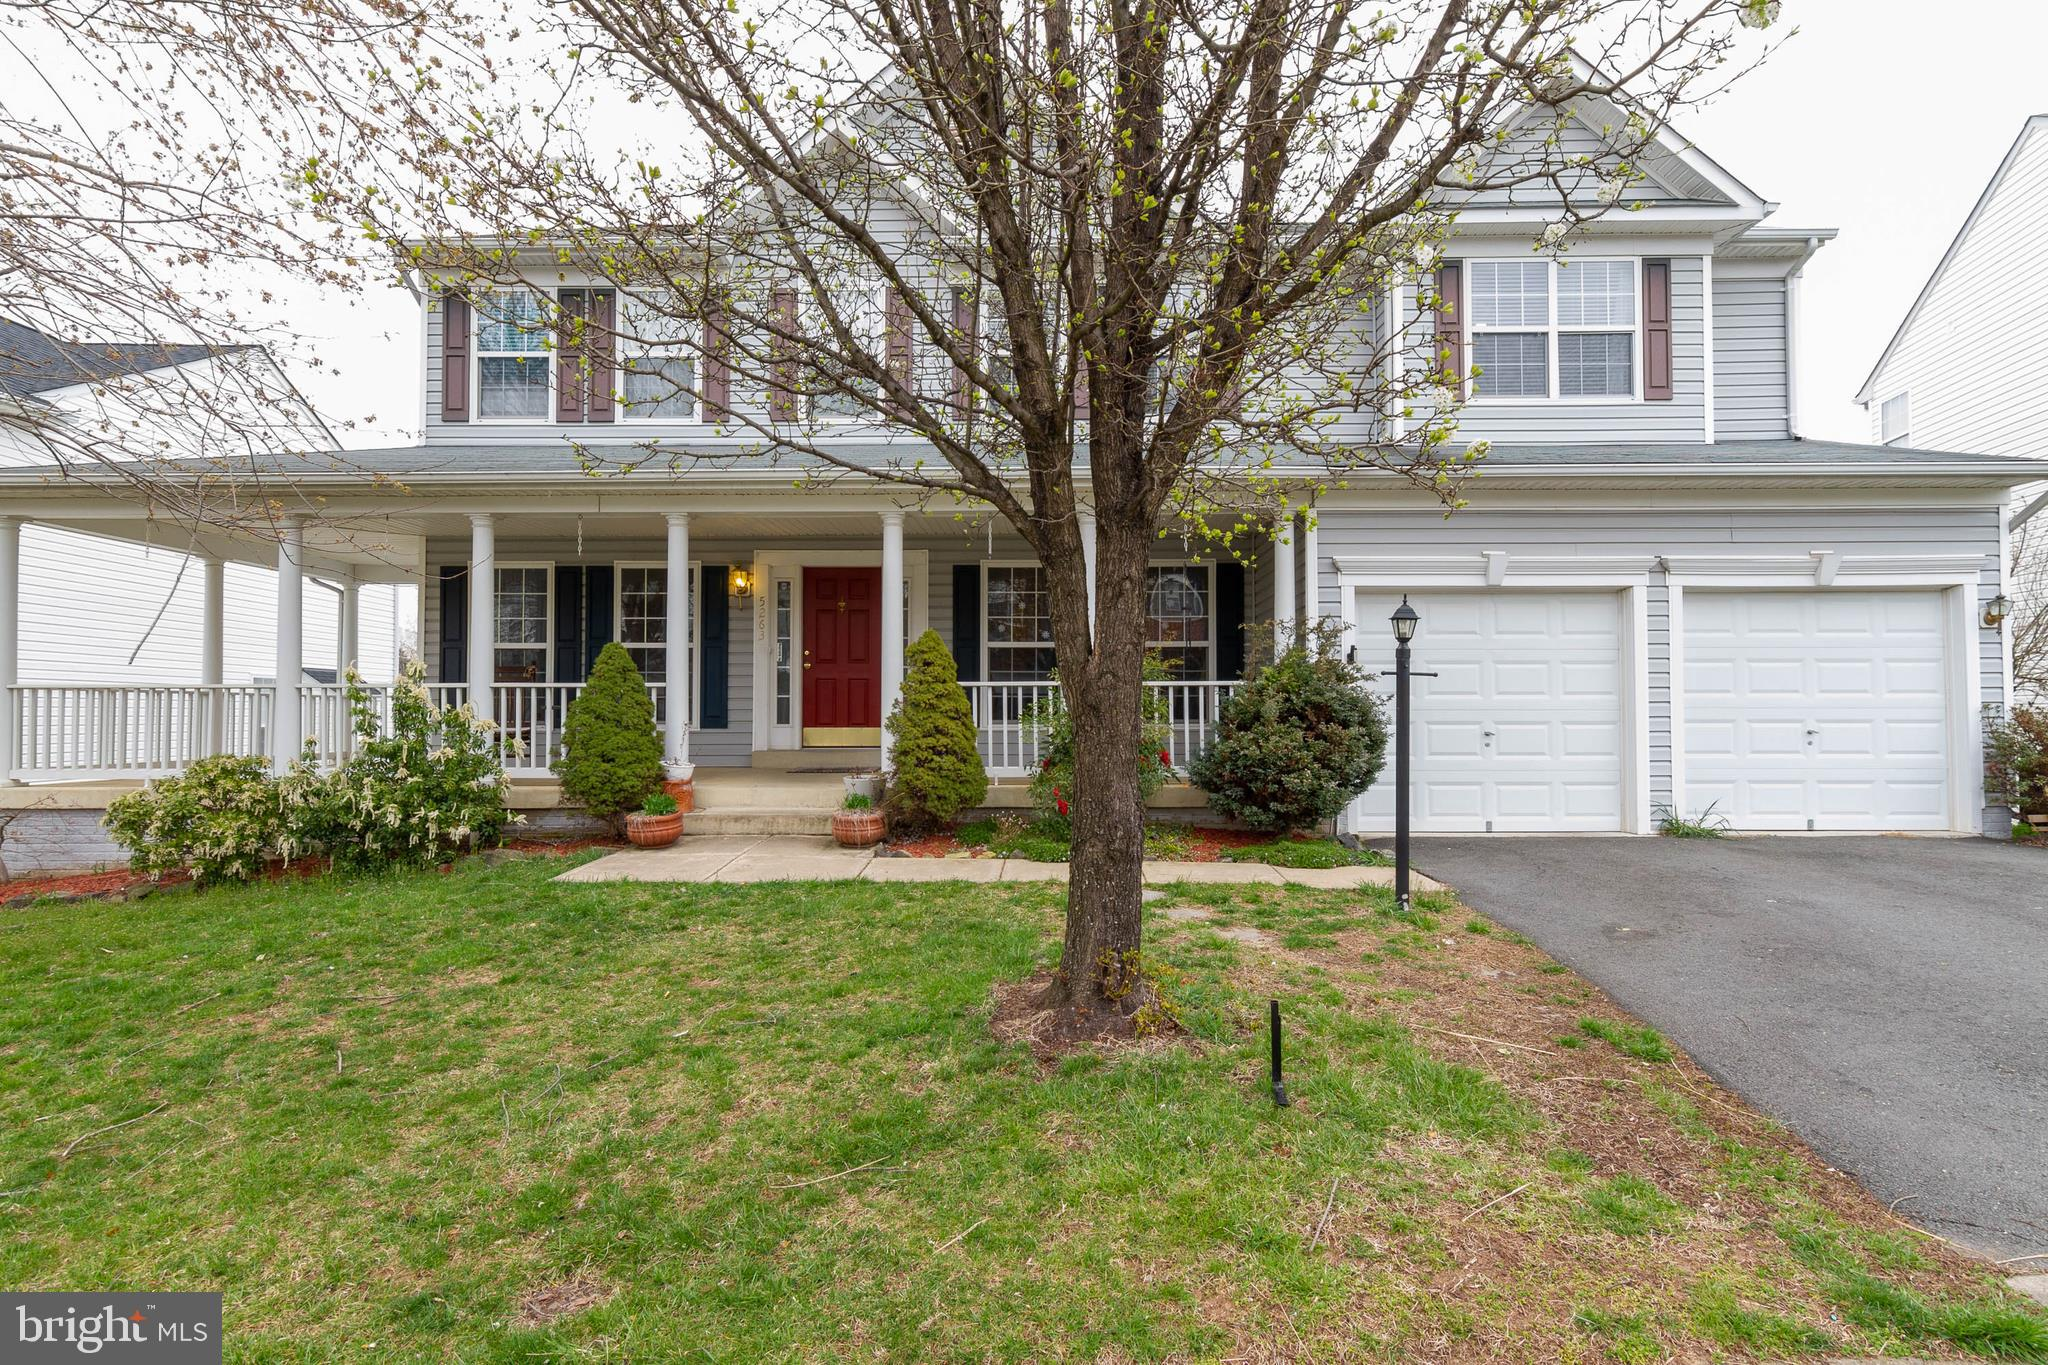 PRICE IMPROVEMENT! Large single family home with two car garage in Lake Terrapin.  House backs up to lake and is just up the street from the community pool.  Features three finished levels, deck, walkout basement, and large front porch.  Convenient to shopping, schools, and commuting options